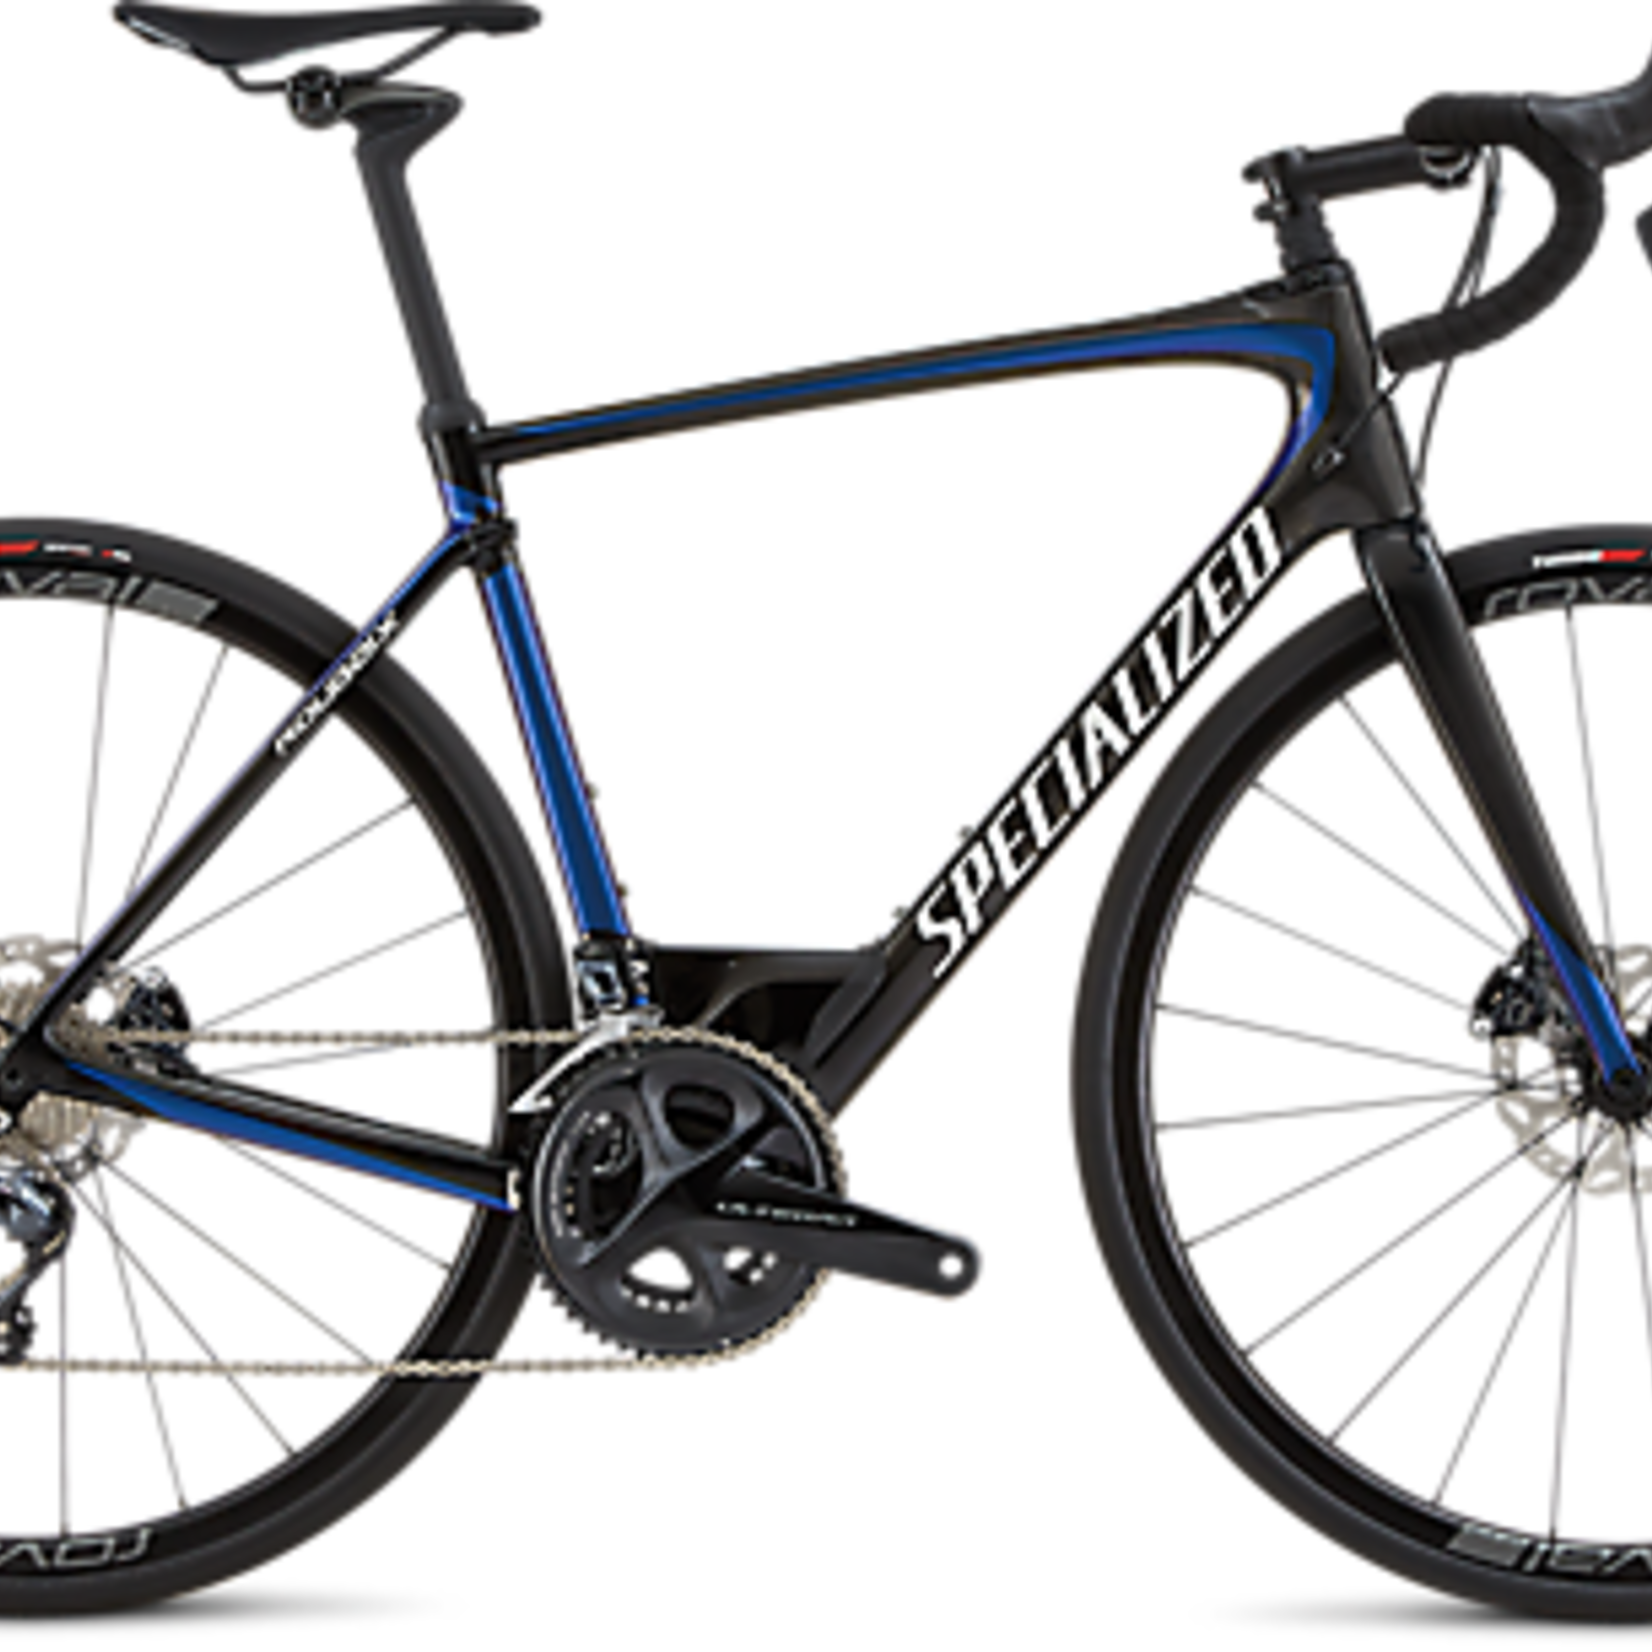 Specialized ROUBAIX EXPERT CARB/CMLN/METWH 54